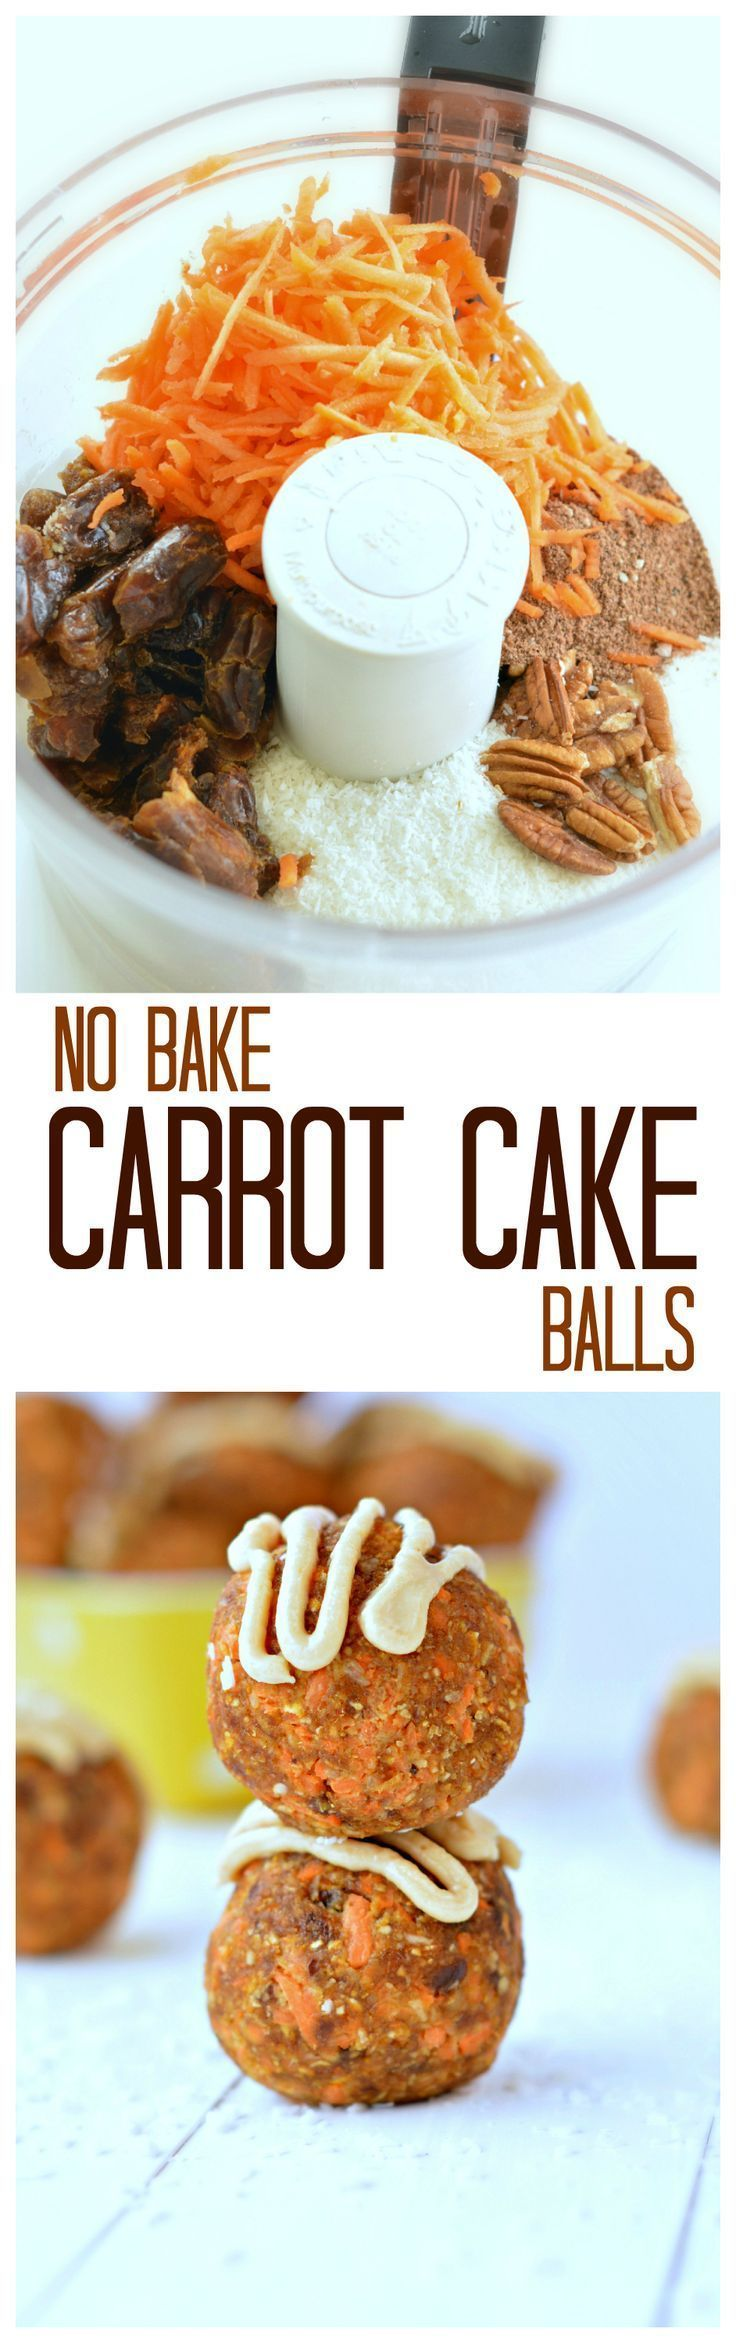 A 3-minute NO-Bake Carrot Cake Ball with crunchy coconut, almond, pecan nuts and oat. Boosted in protein and perfect as a recovery food after gym. Vegan, refined sugar free and dairy free. #raw #carrotcake #carrot #cake #balls #protein #cashew #almond #coconut